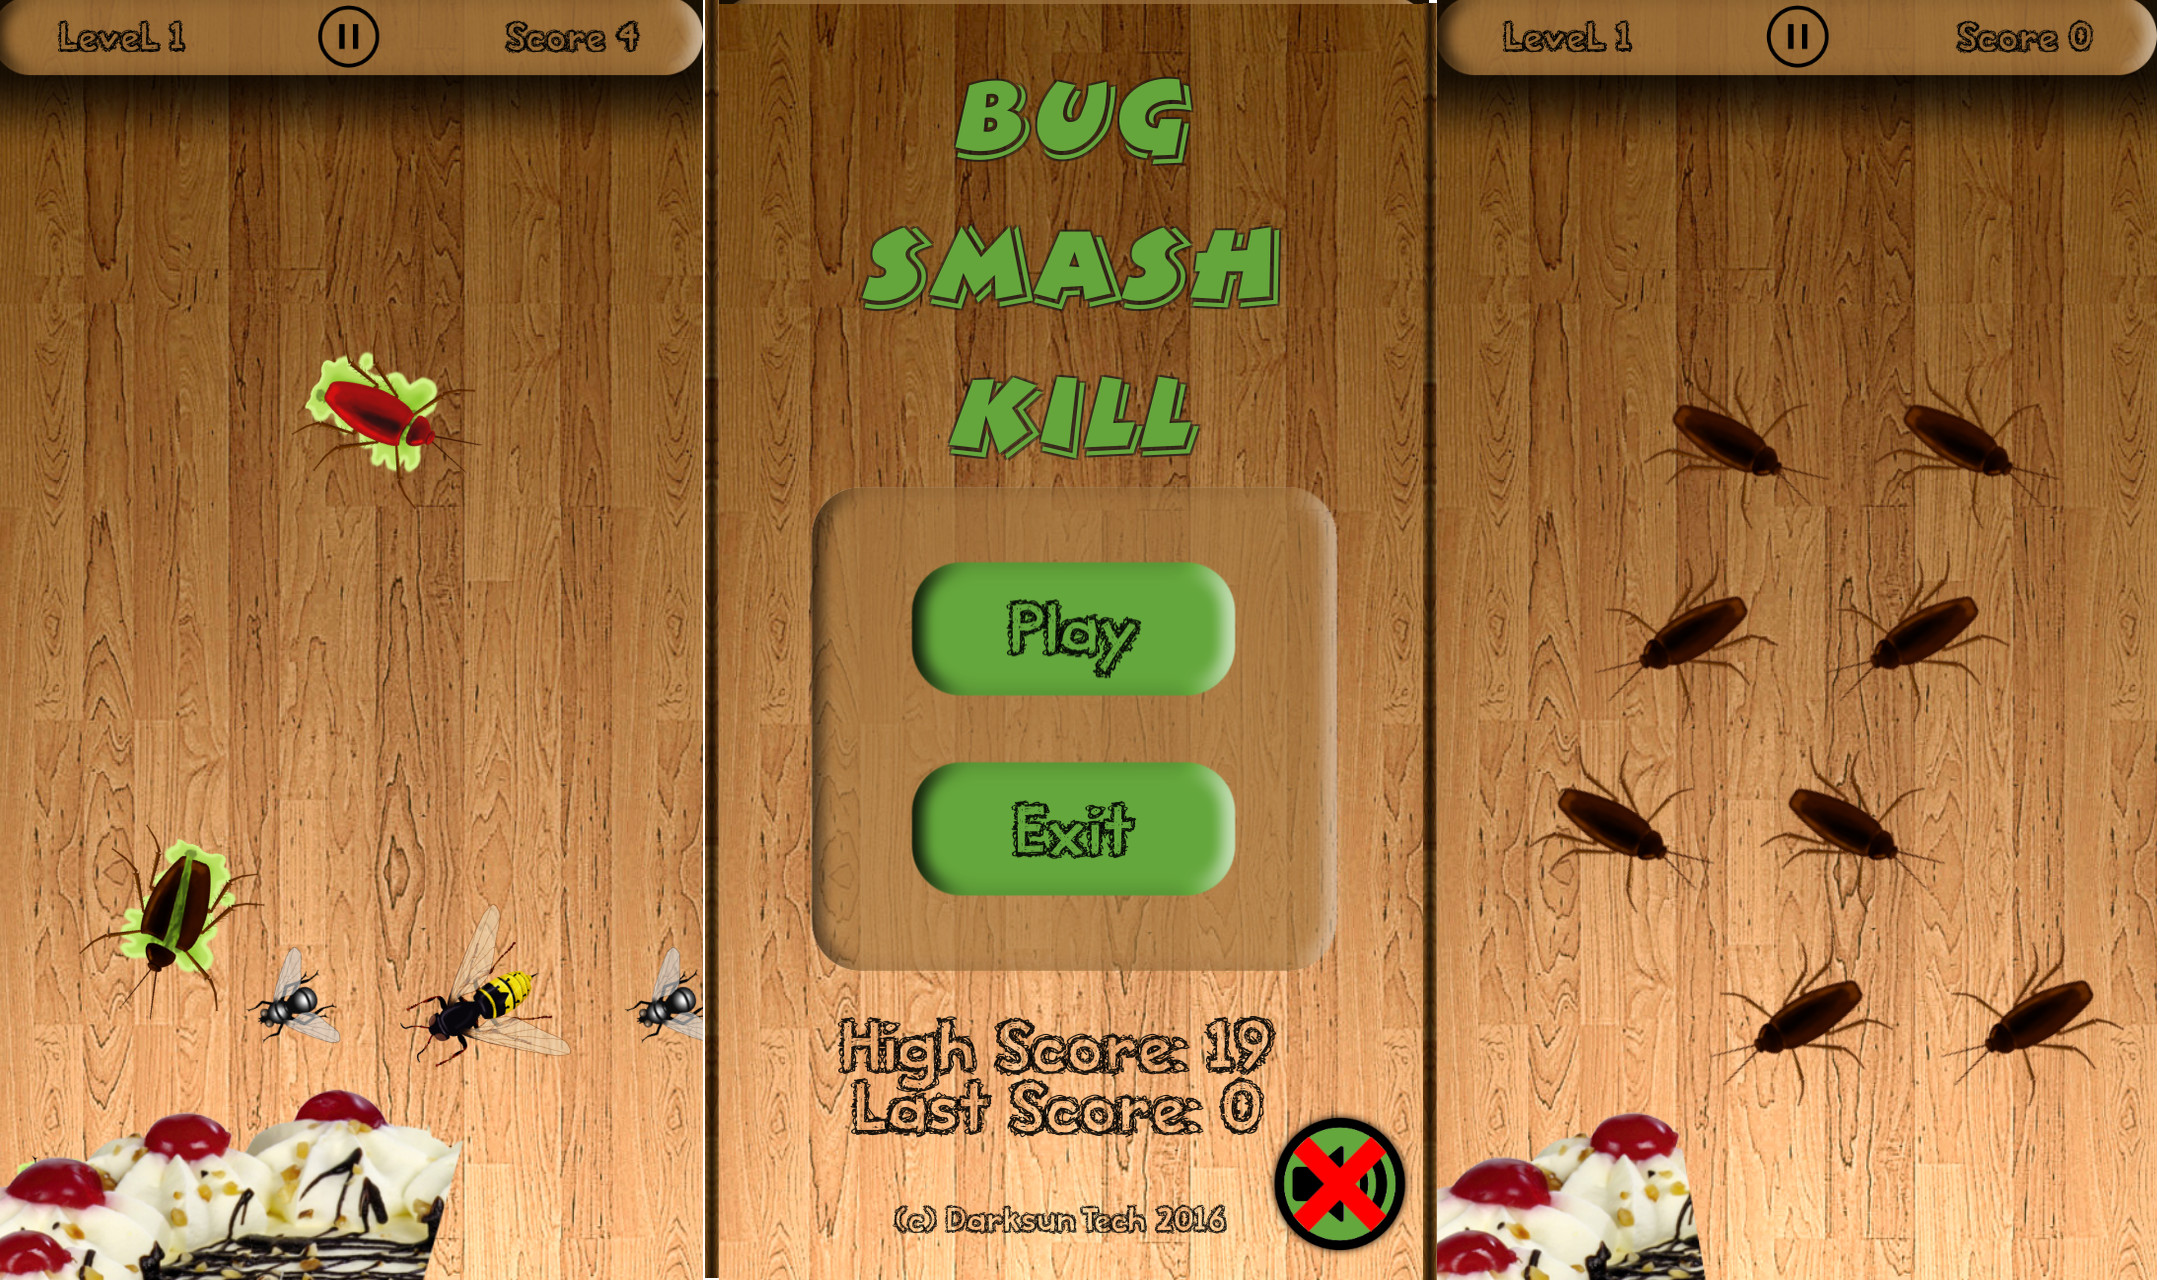 Bug Smash Kill - Android Game by Darksun Tech alt